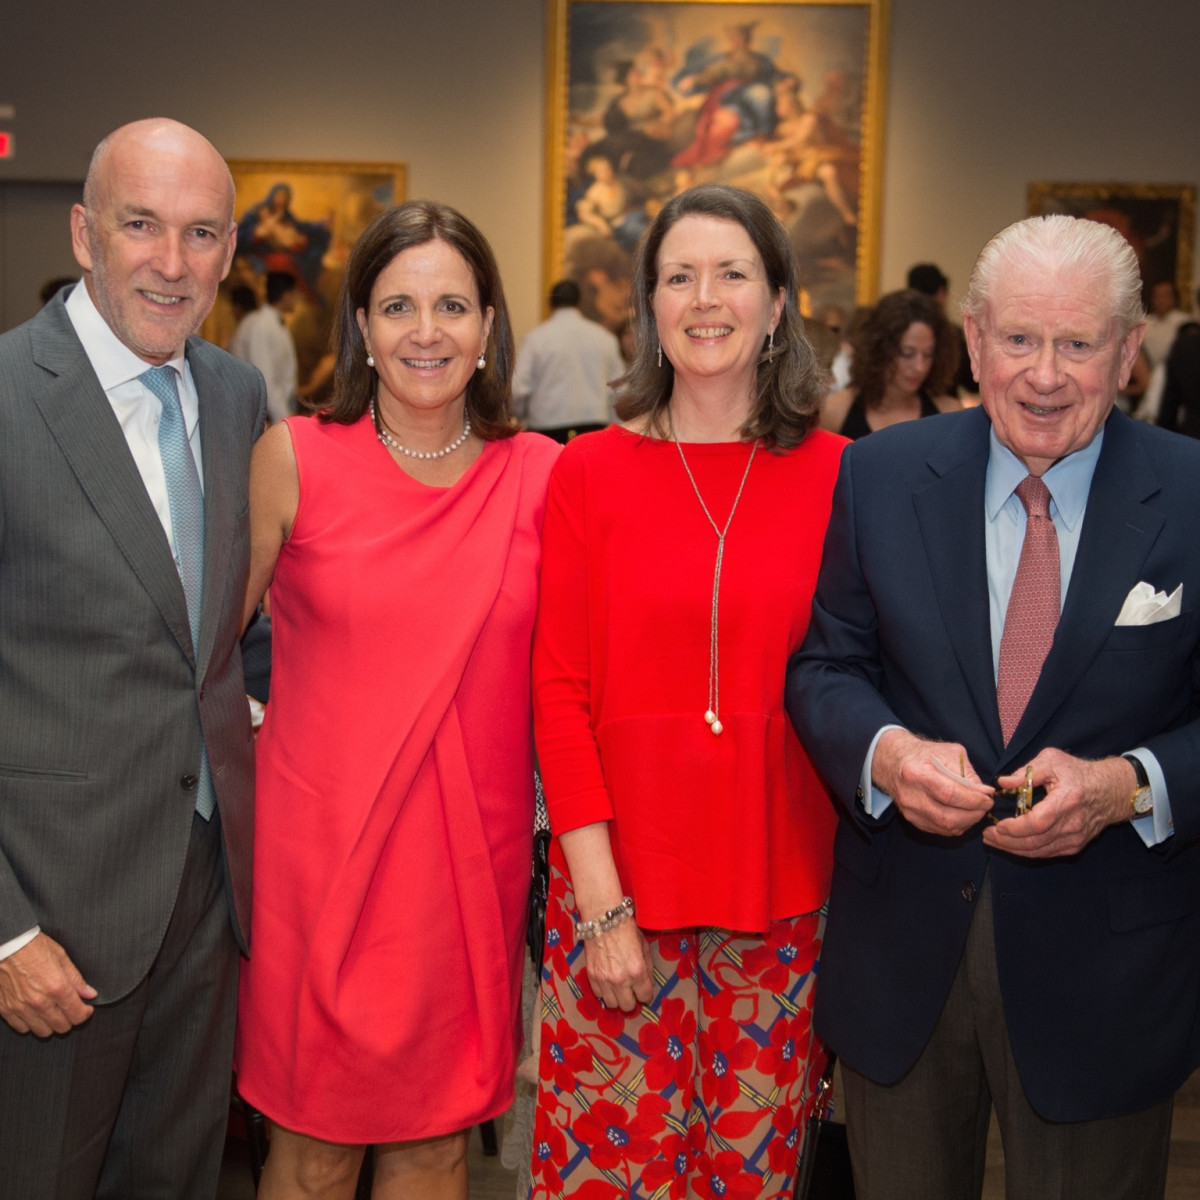 Ignacio and Isabel Torras; Joanna and Rusty Wortham at MFAH Mexican Modernism dinner